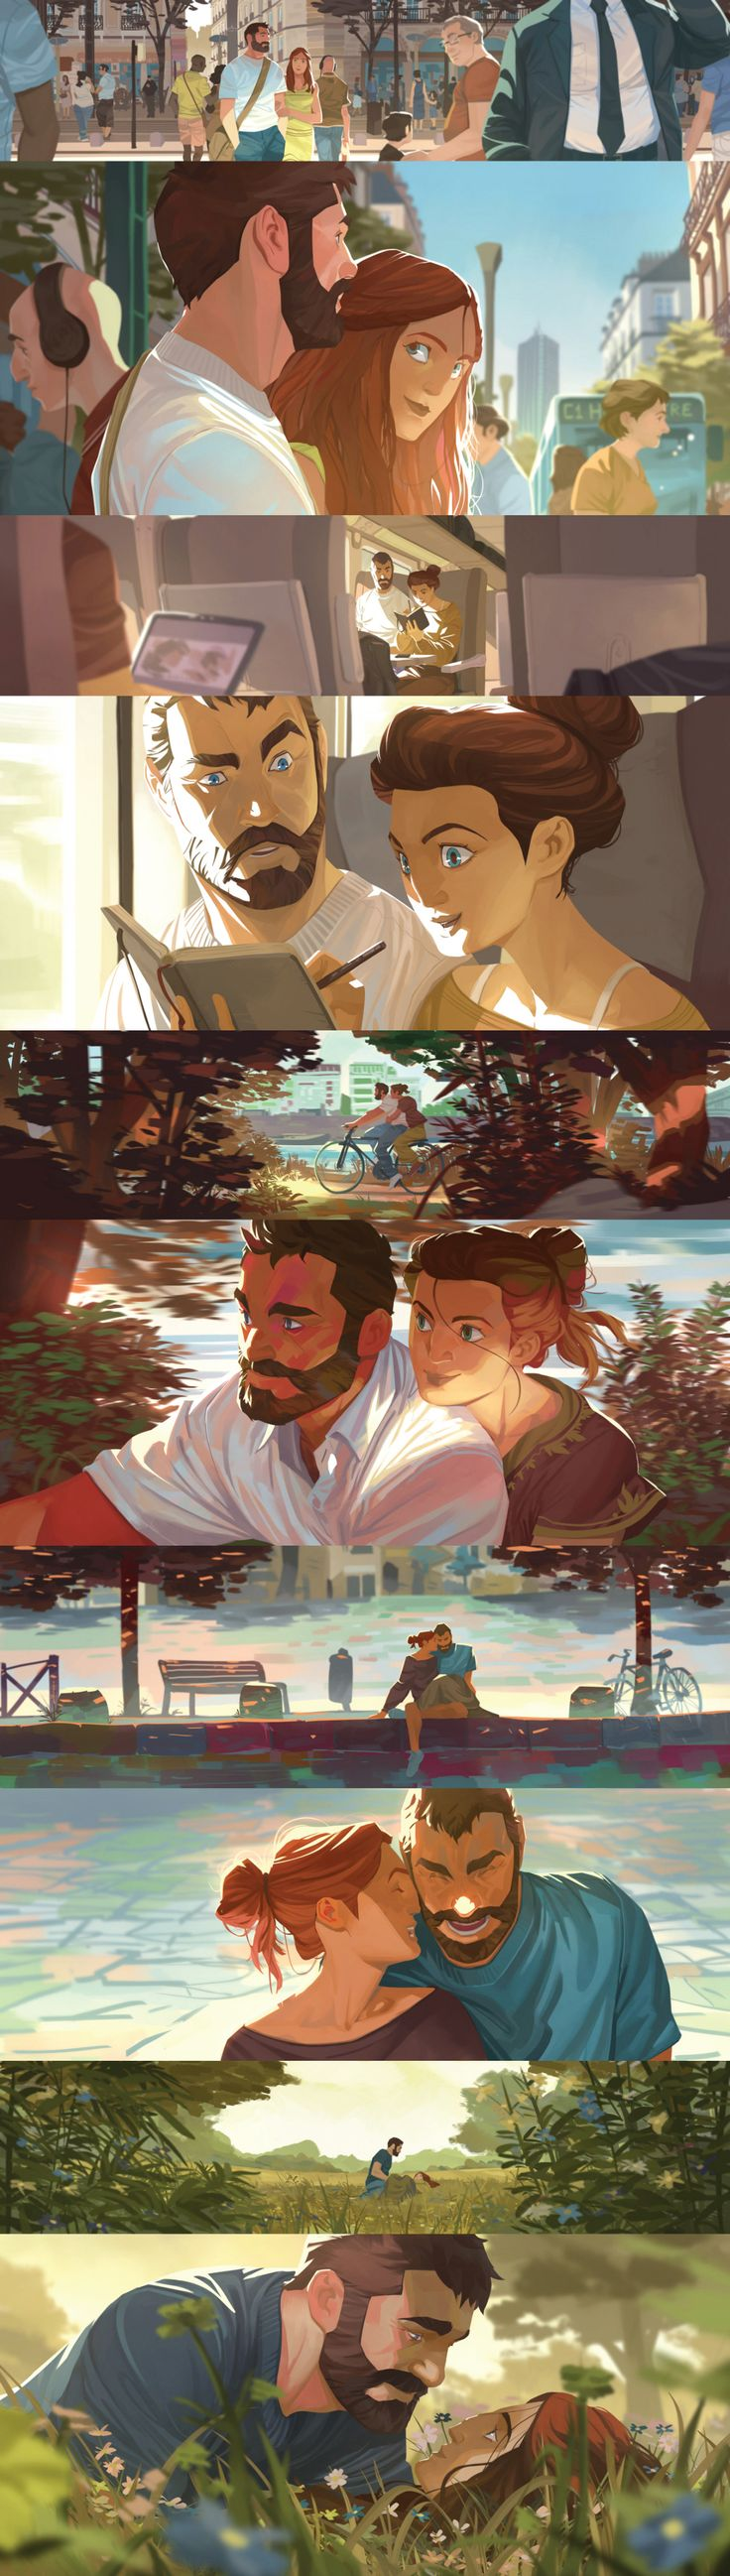 http://society6.com/nesskain || This is so beautiful it makes my heart ache. Look at the colors! The scenery! The lighting! The LOVE!